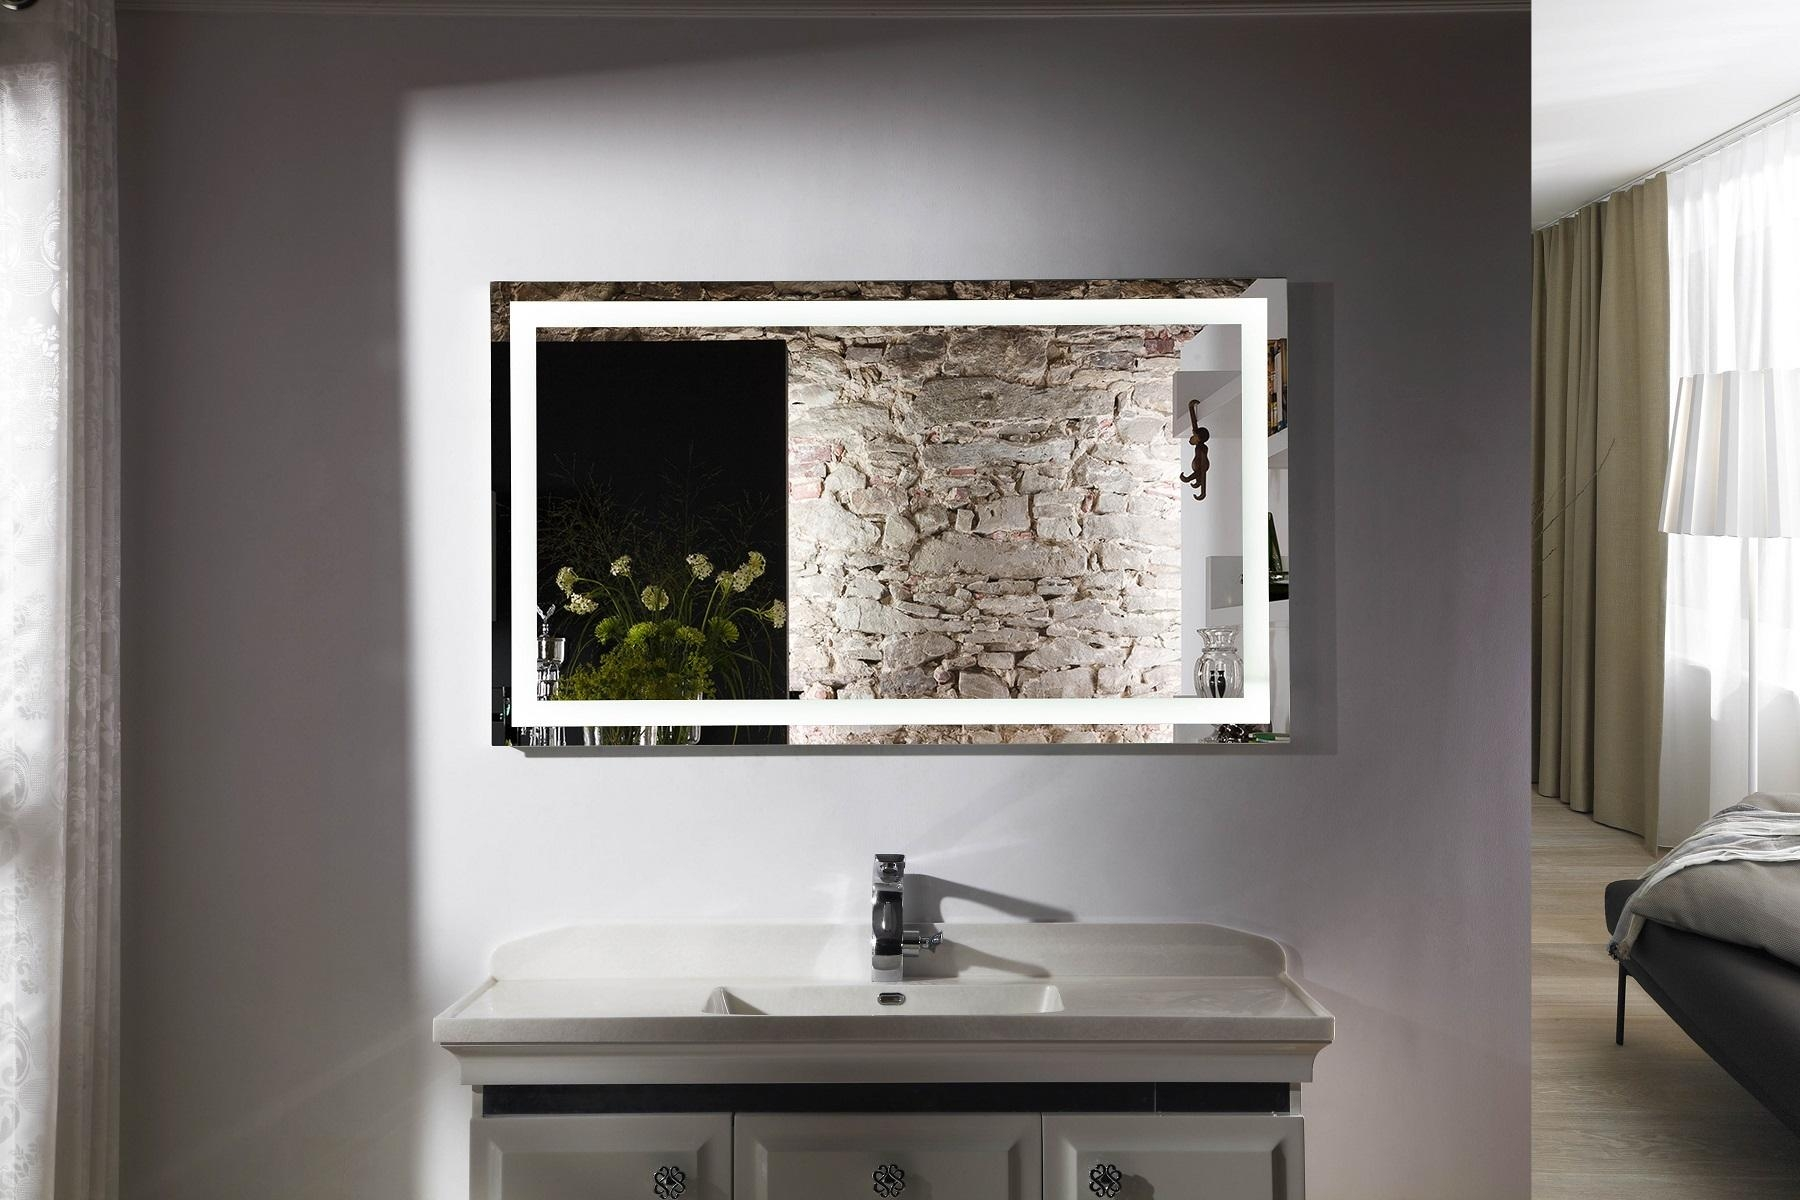 Bathroom: Lighted Bathroom Mirrors | Bathroom Vanity Mirror Lights Within Extra Wide Bathroom Mirrors (Image 7 of 20)